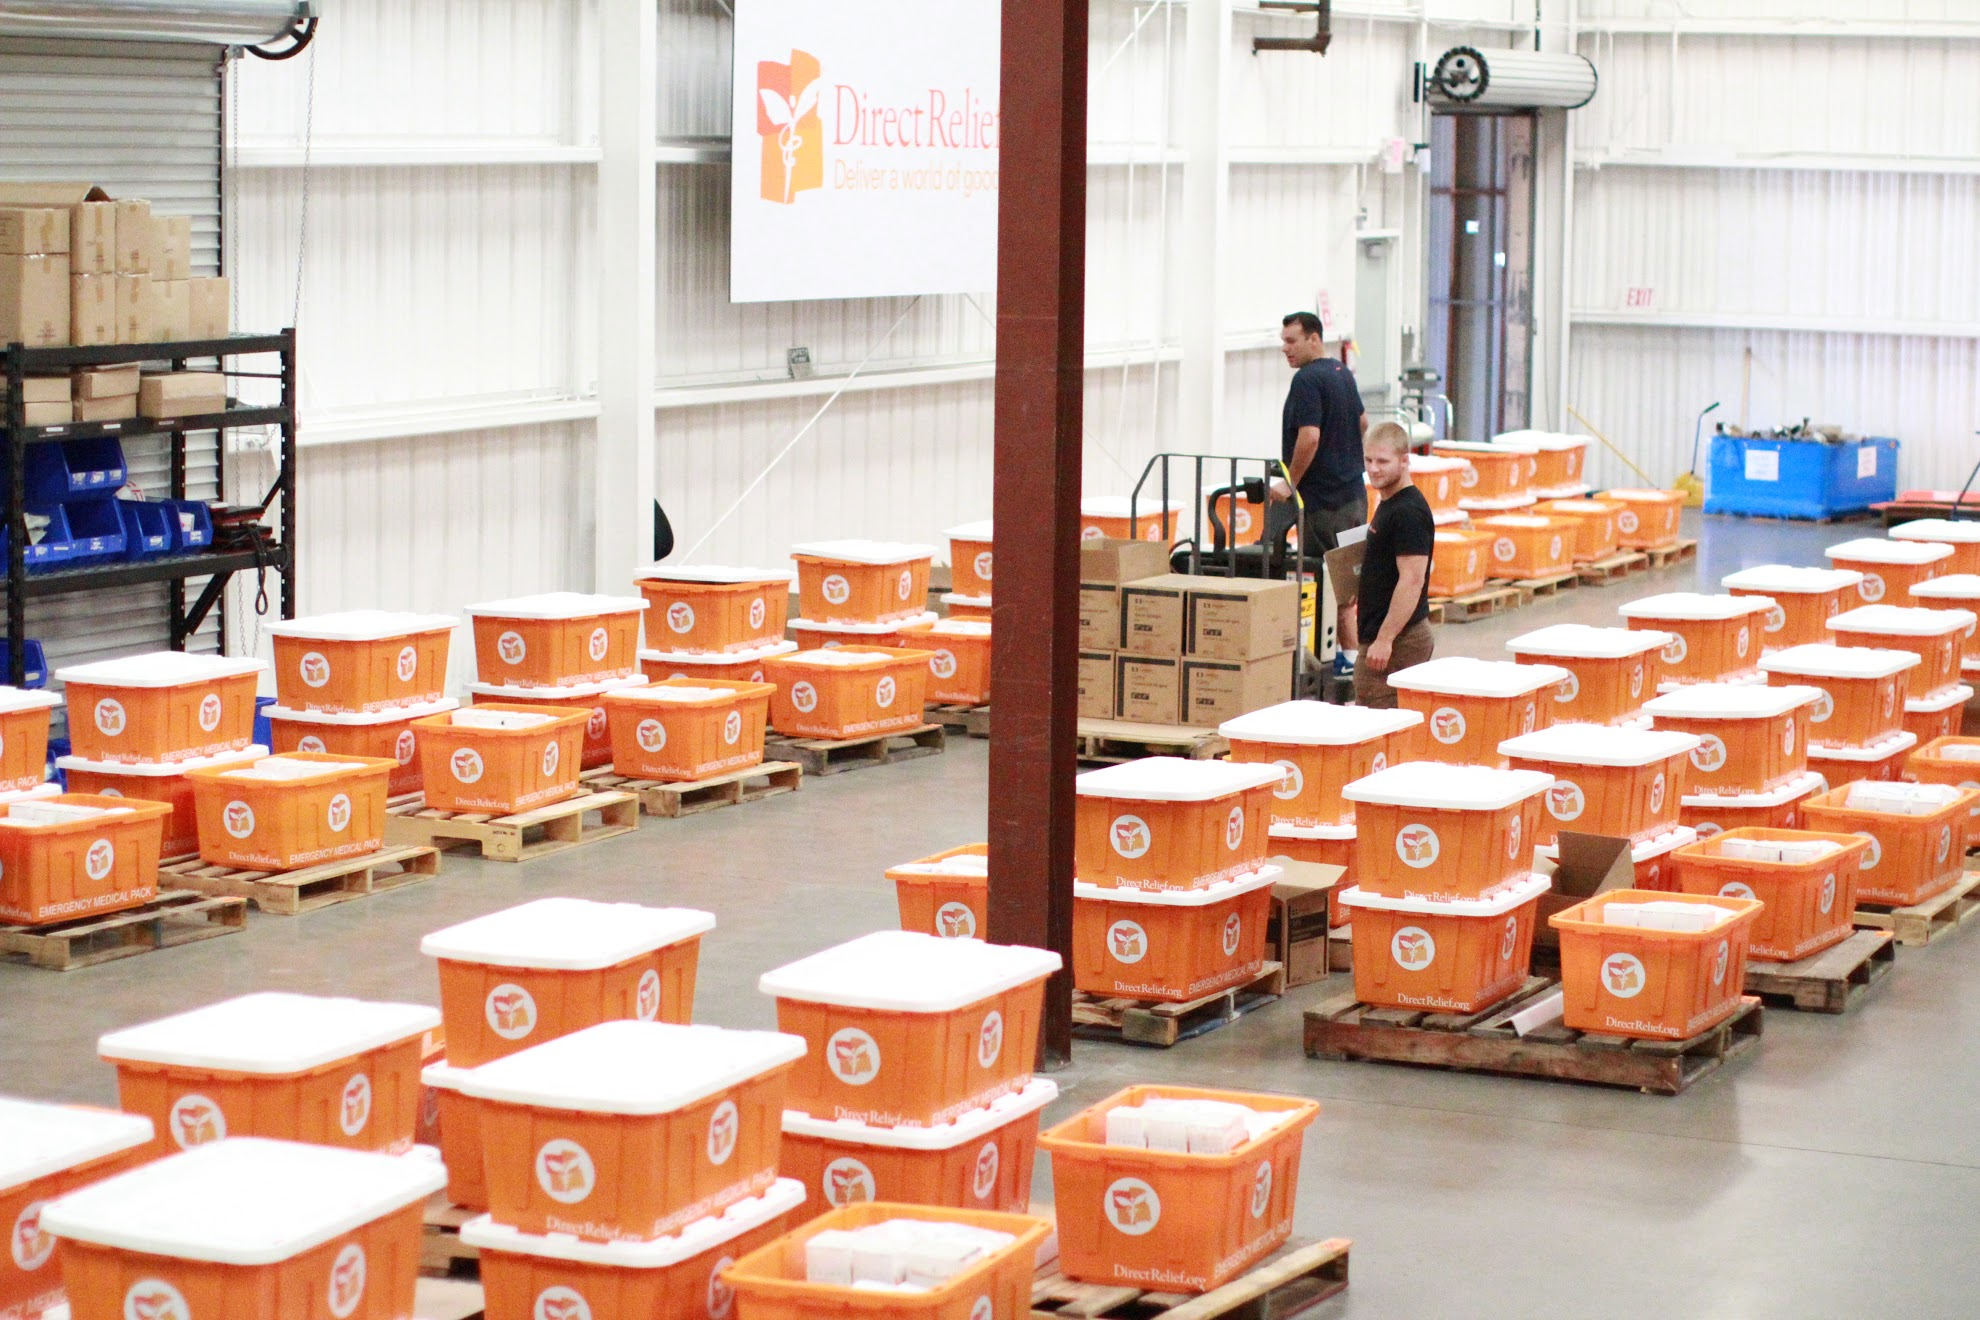 Hurricane Preparedness Packs are assembled in Direct Relief's warehouse each year in advance of hurricane season. Eleven of the prepositioned caches, which contain critical medicines and supplies, are currently with health clinics being impacted by Hurricane Harvey. (Direct Relief photo)